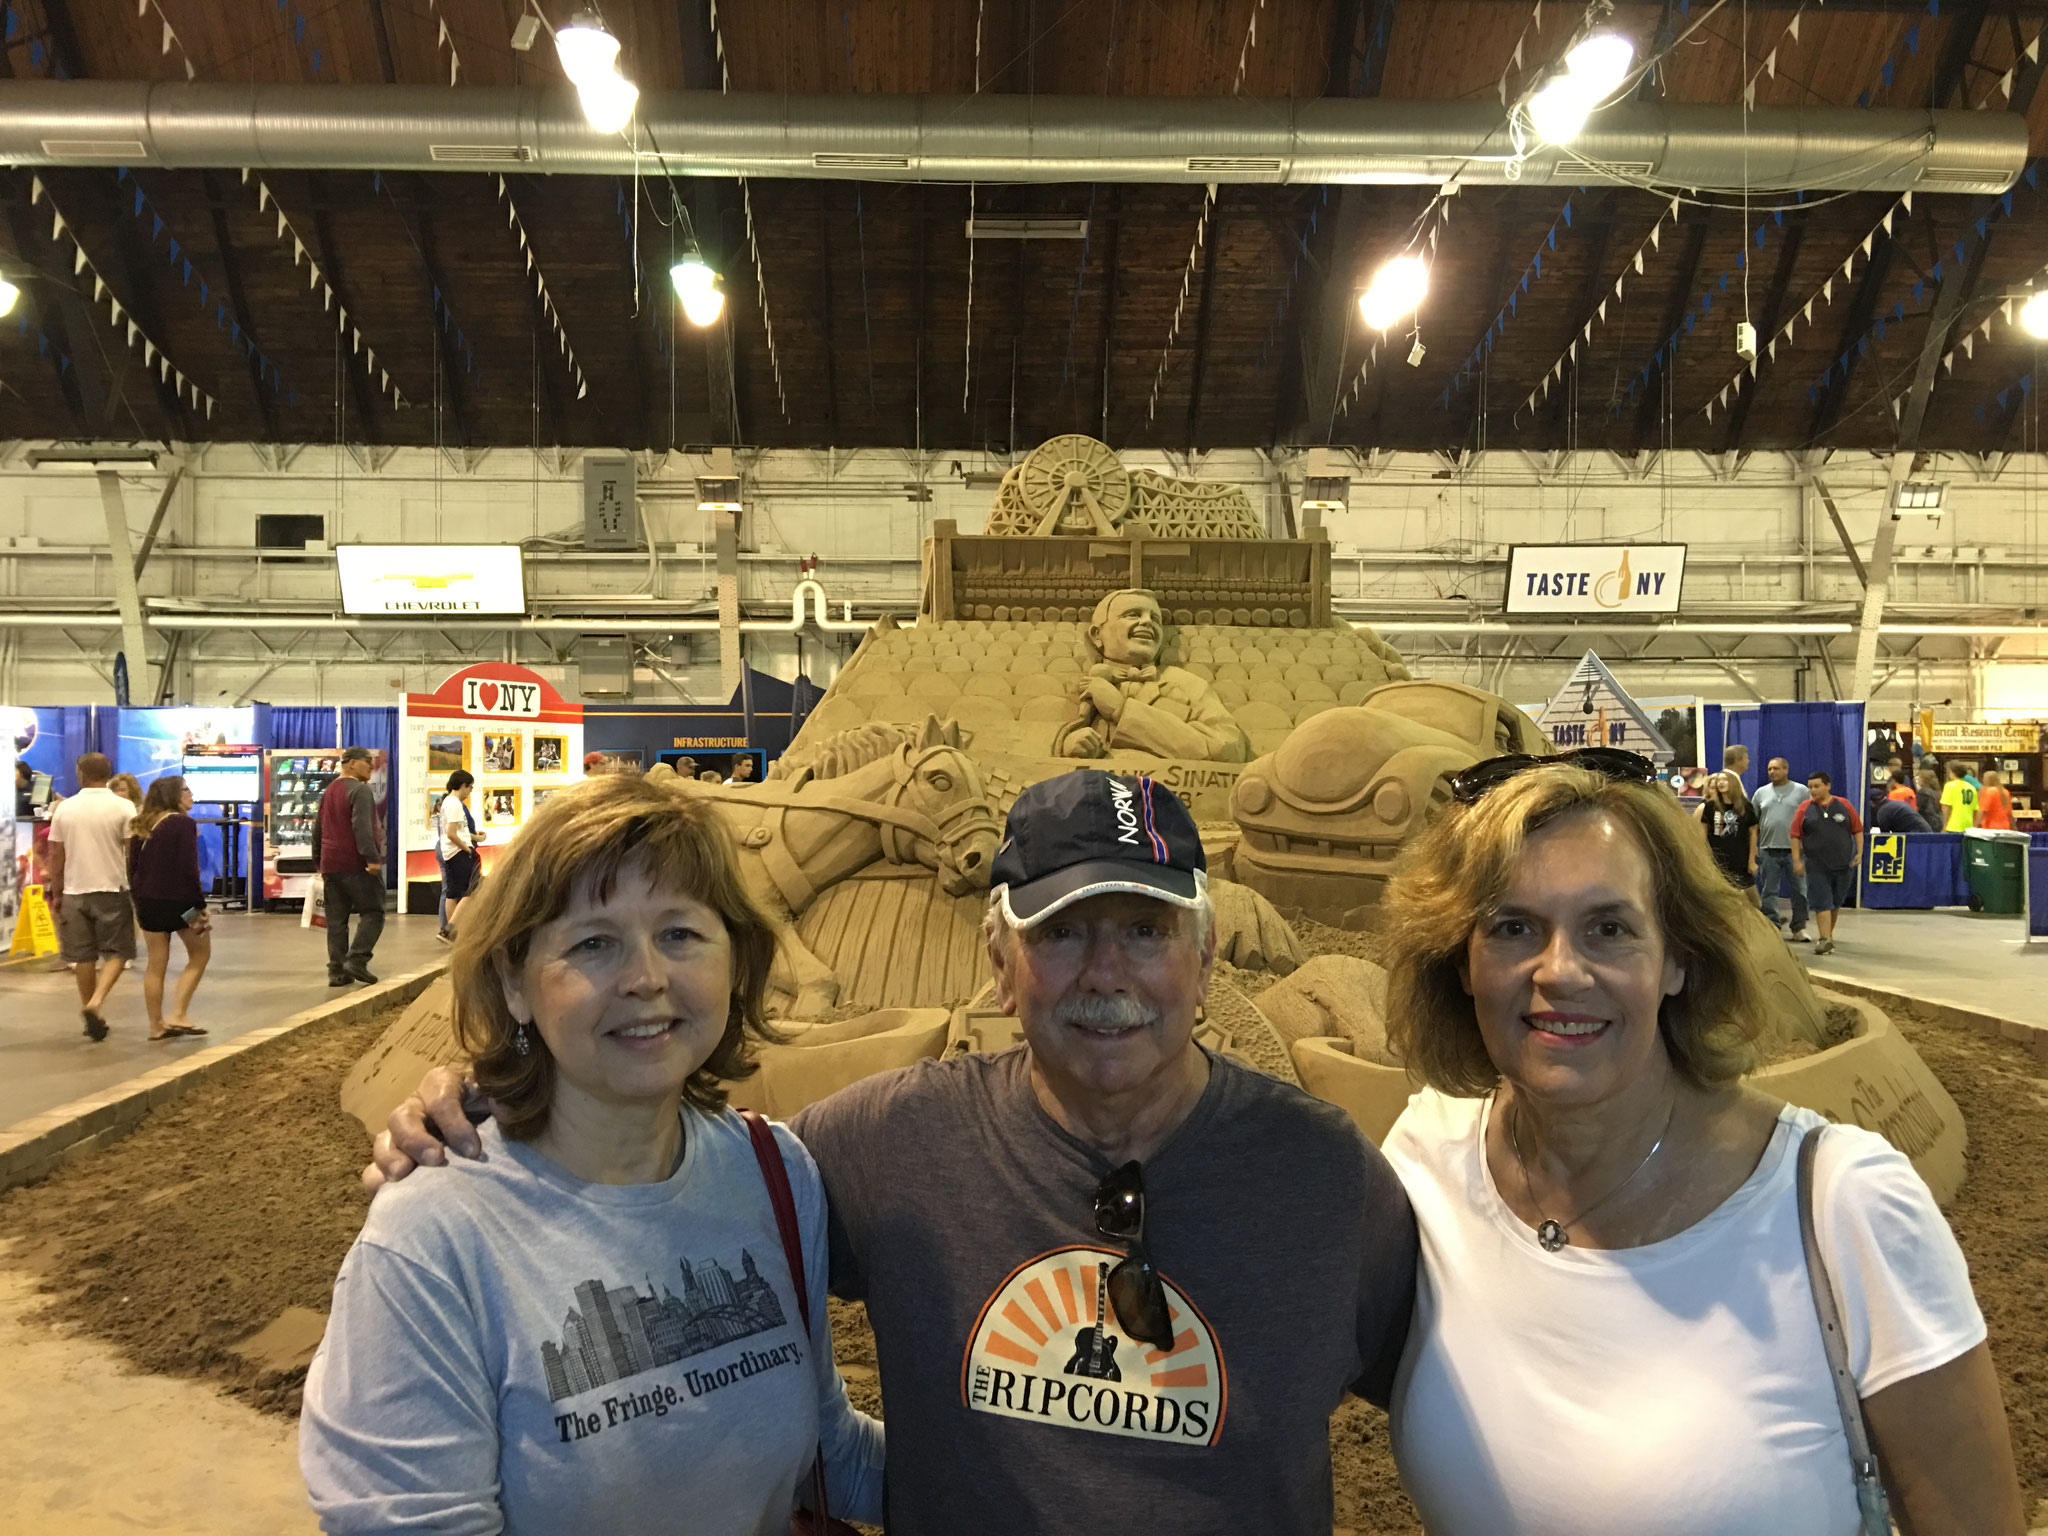 Barbara, Don & Lorraine at the Sand Sculpture, NY State Fair, Sept. 3, 2016 Syracuse, NY!